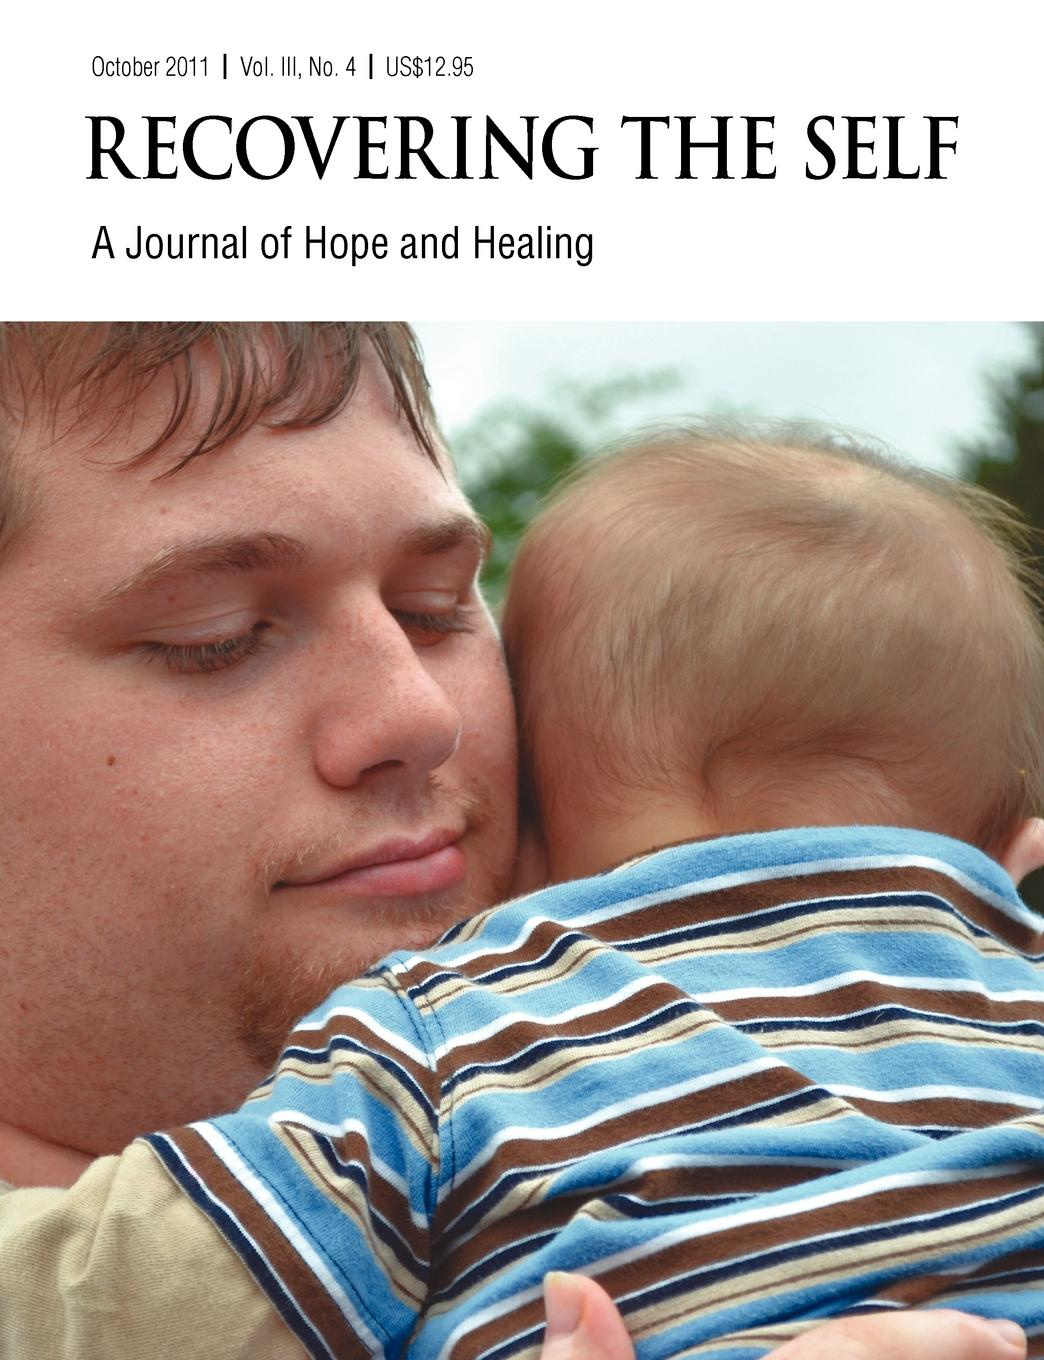 Mark Elswick Recovering The Self. A Journal of Hope and Healing (Vol. III, No. 4) -- Focus on Parenting recovering the self